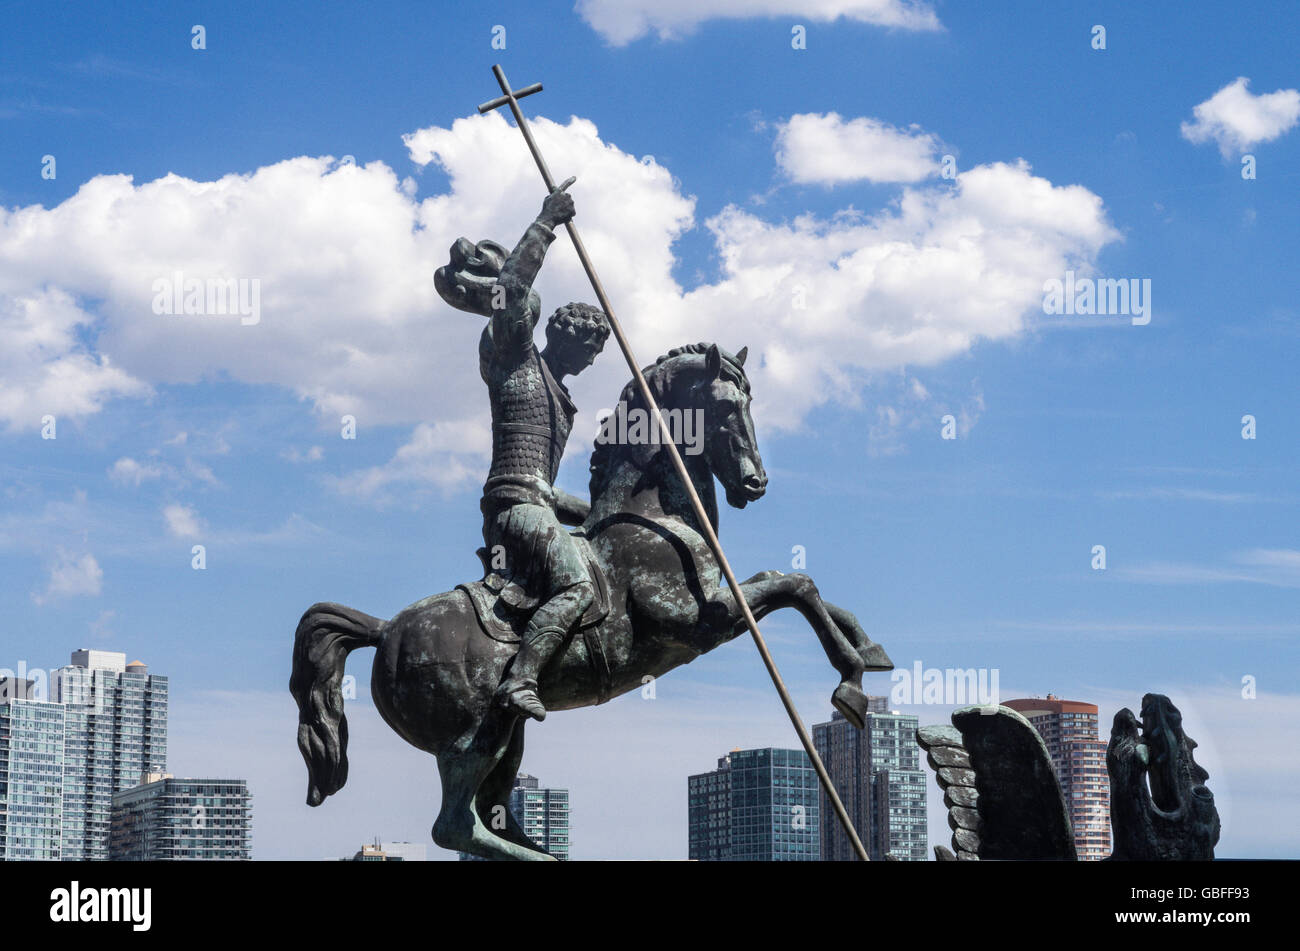 St. George Slaying Dragon Statue, United Nations, NYC - Stock Image